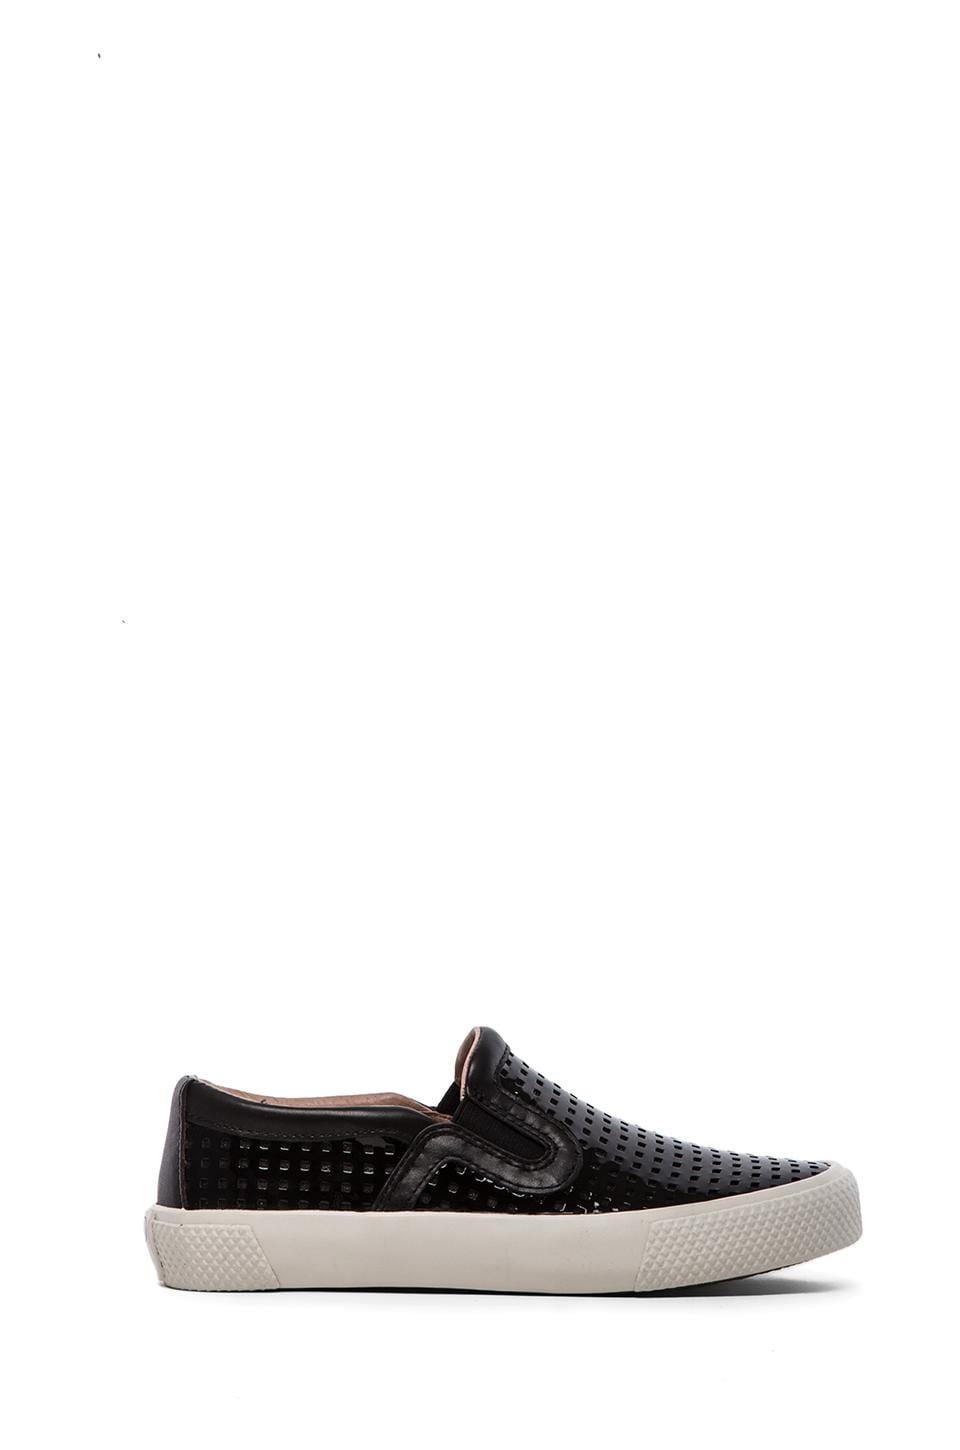 RACHEL ZOE Barney Loafer in Black